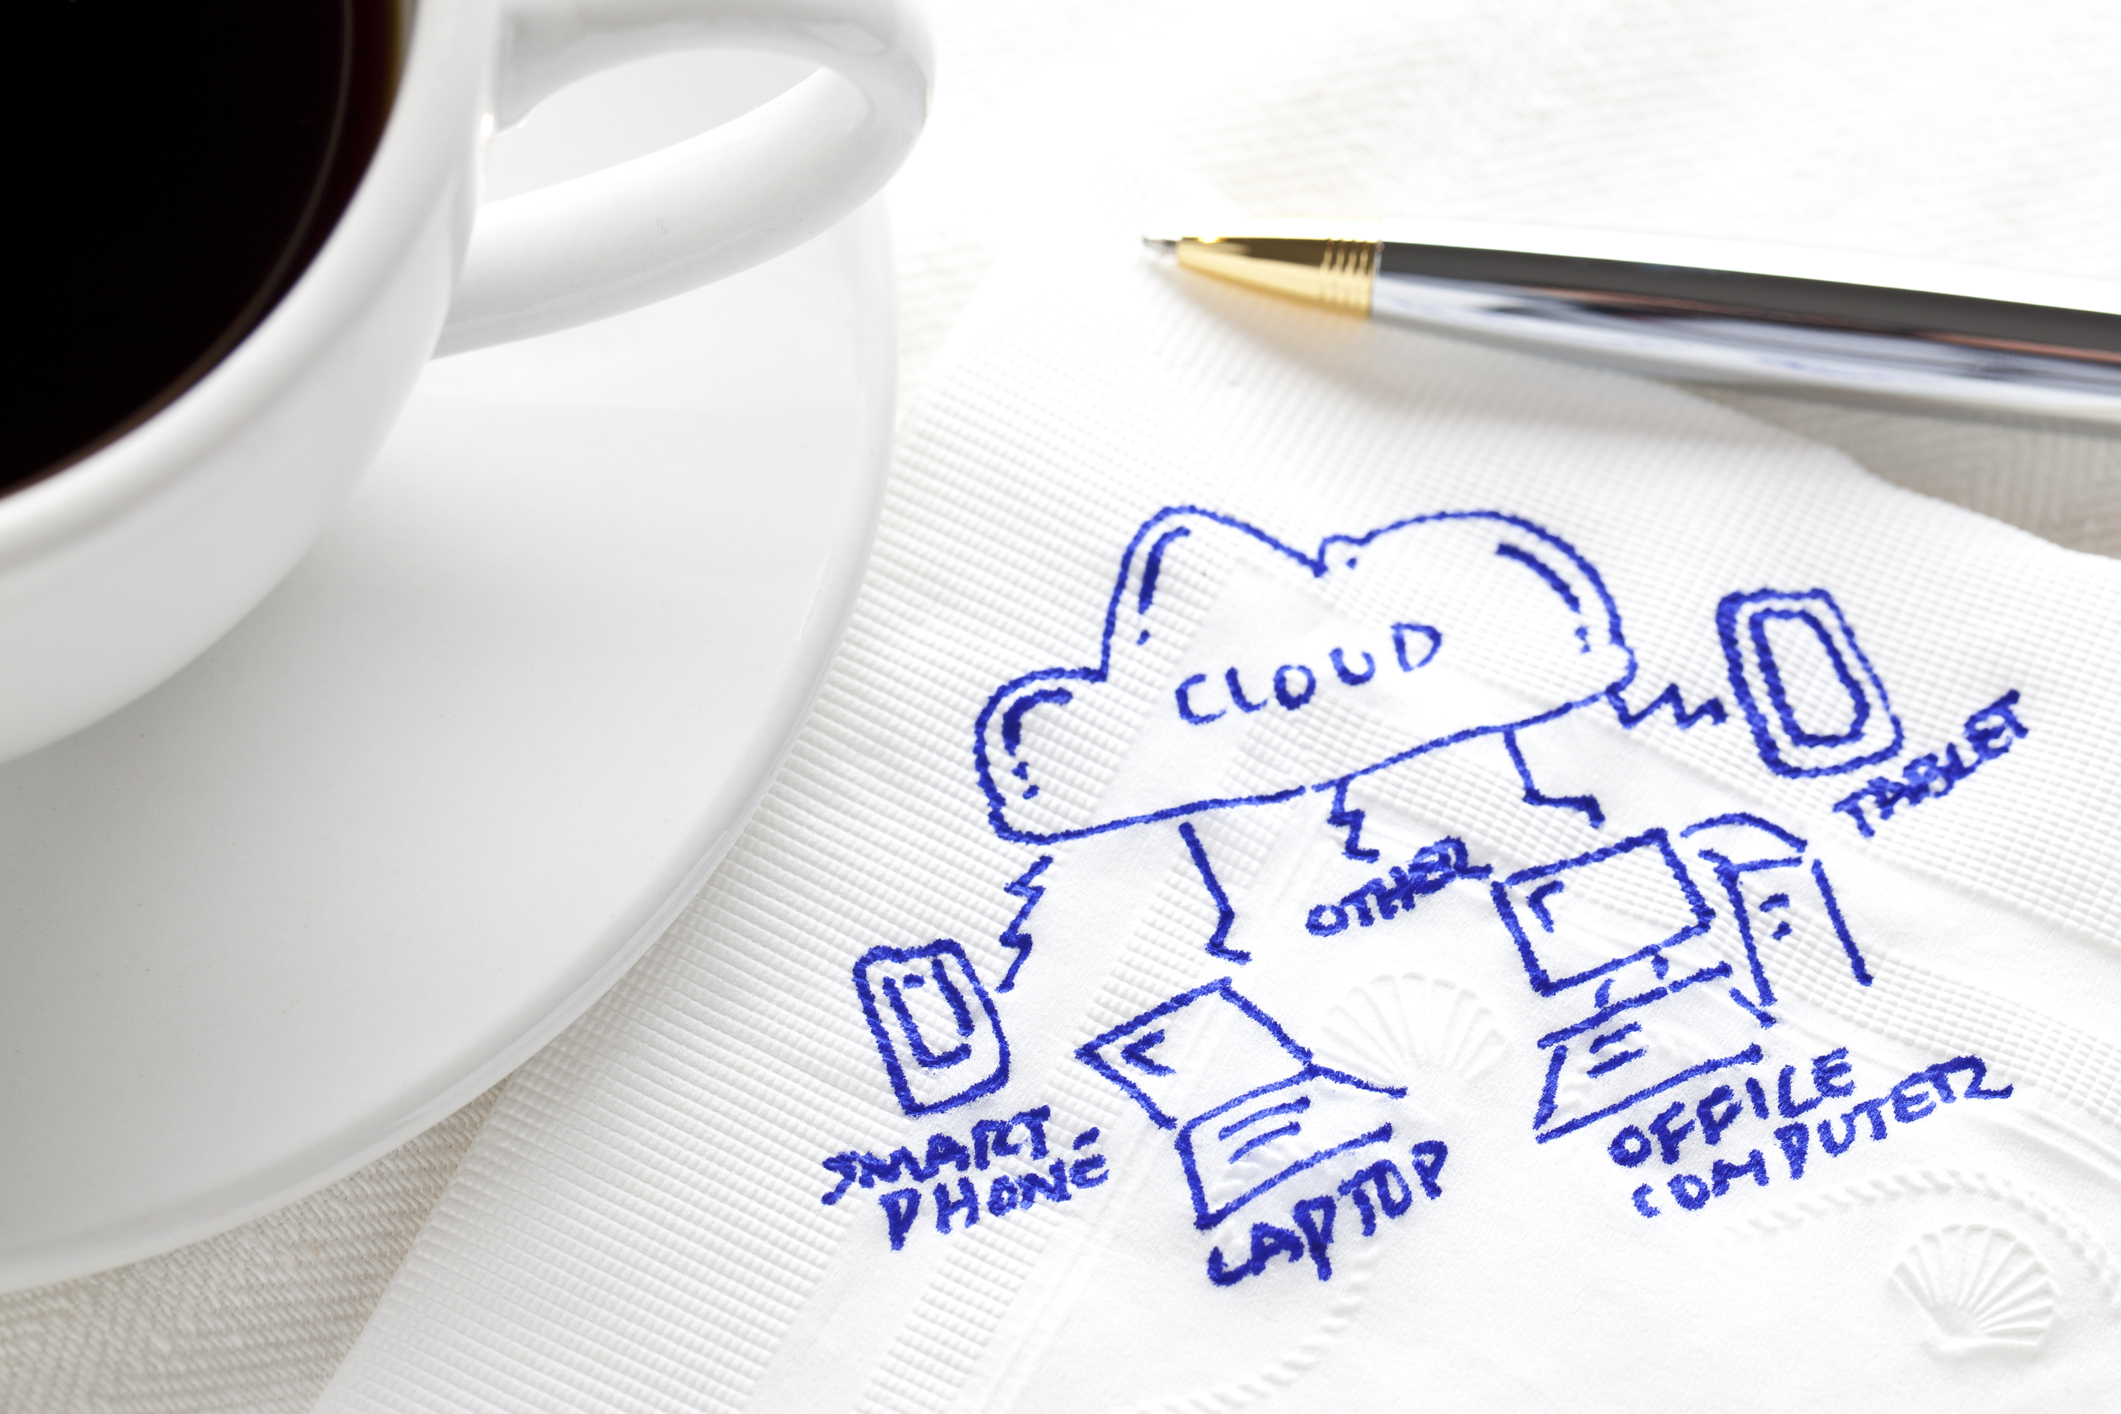 Cloud Computing on Napkin